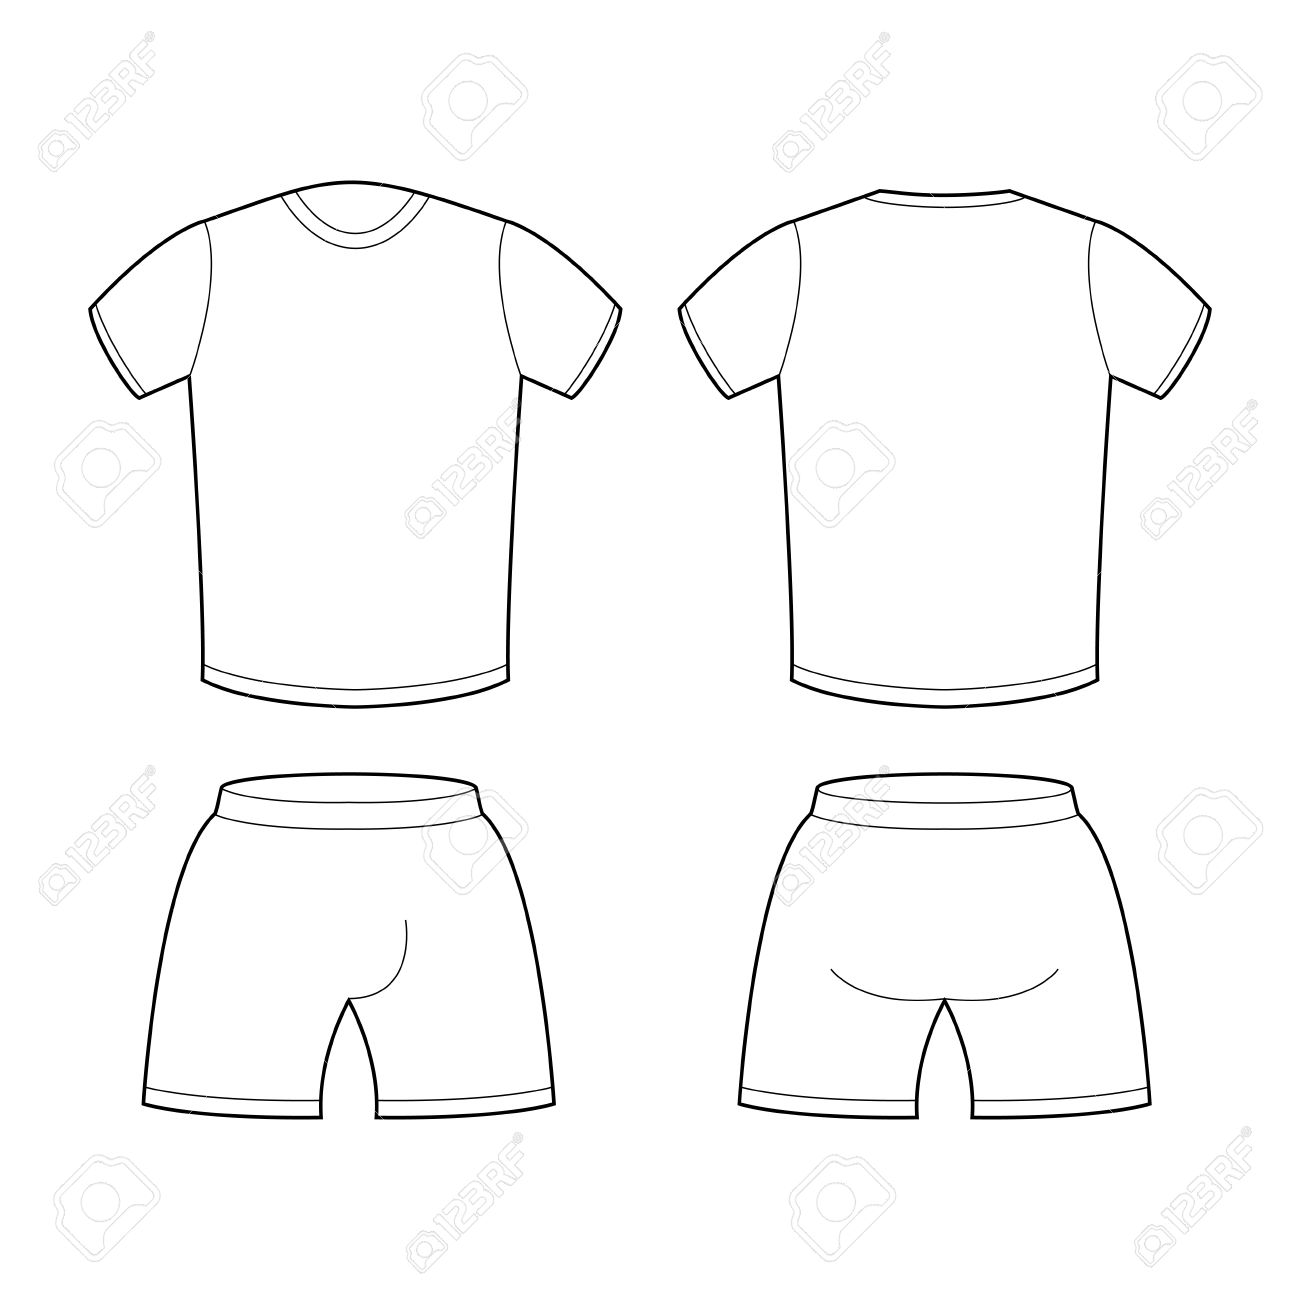 White t shirt for design - T Shirt And Shorts Template For Design Sample For Sports Clothing Soccer Football